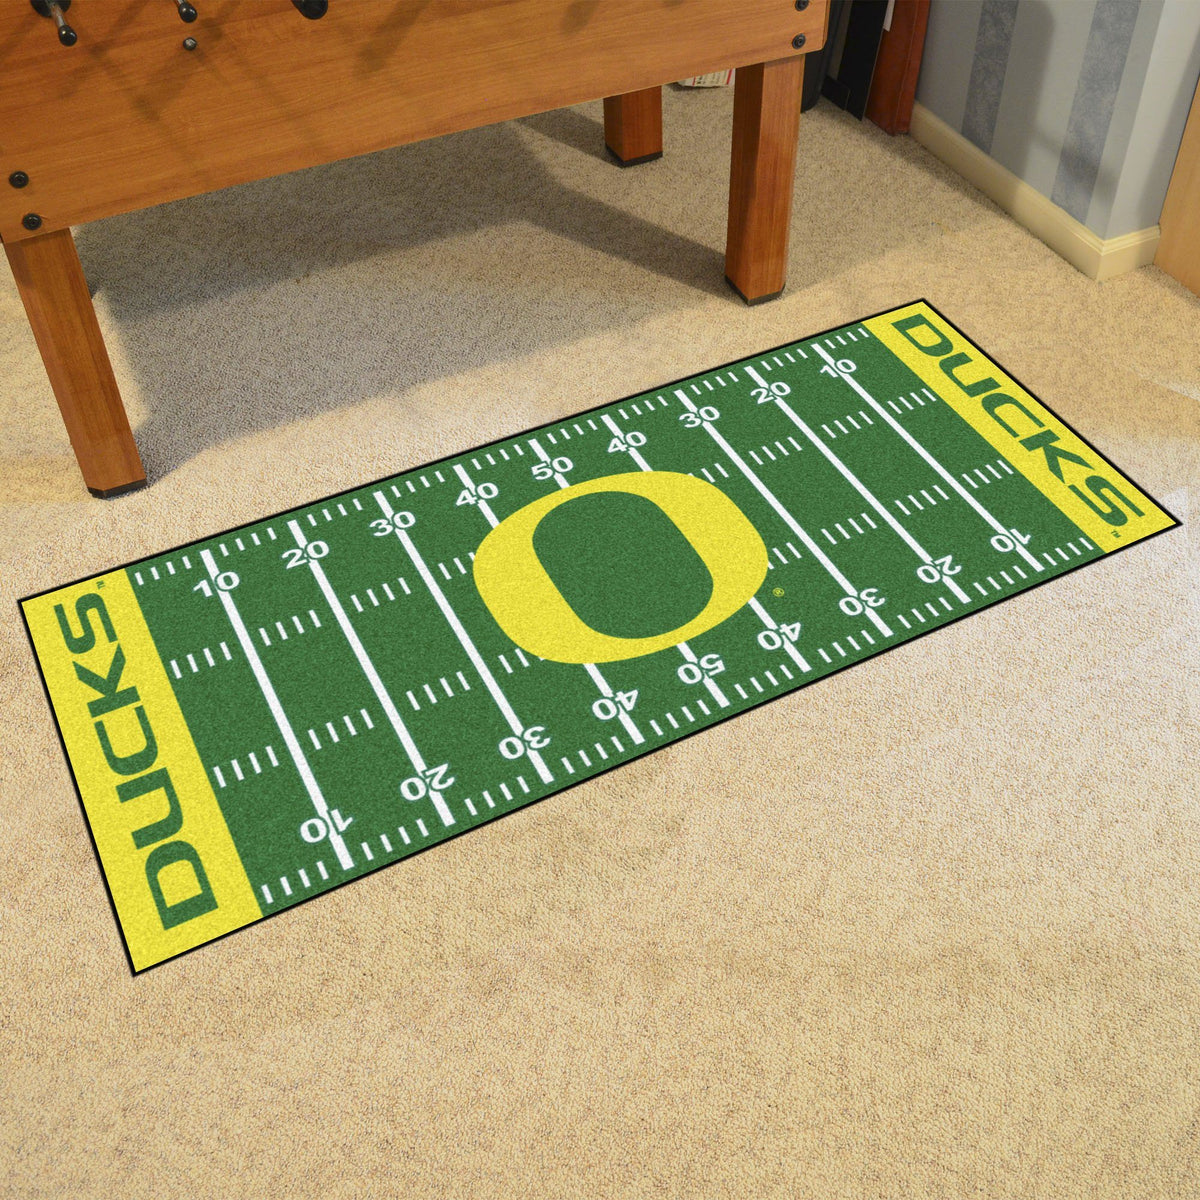 Collegiate - Football Field Runner Collegiate Mats, Rectangular Mats, Football Field Runner, Collegiate, Home Fan Mats Oregon